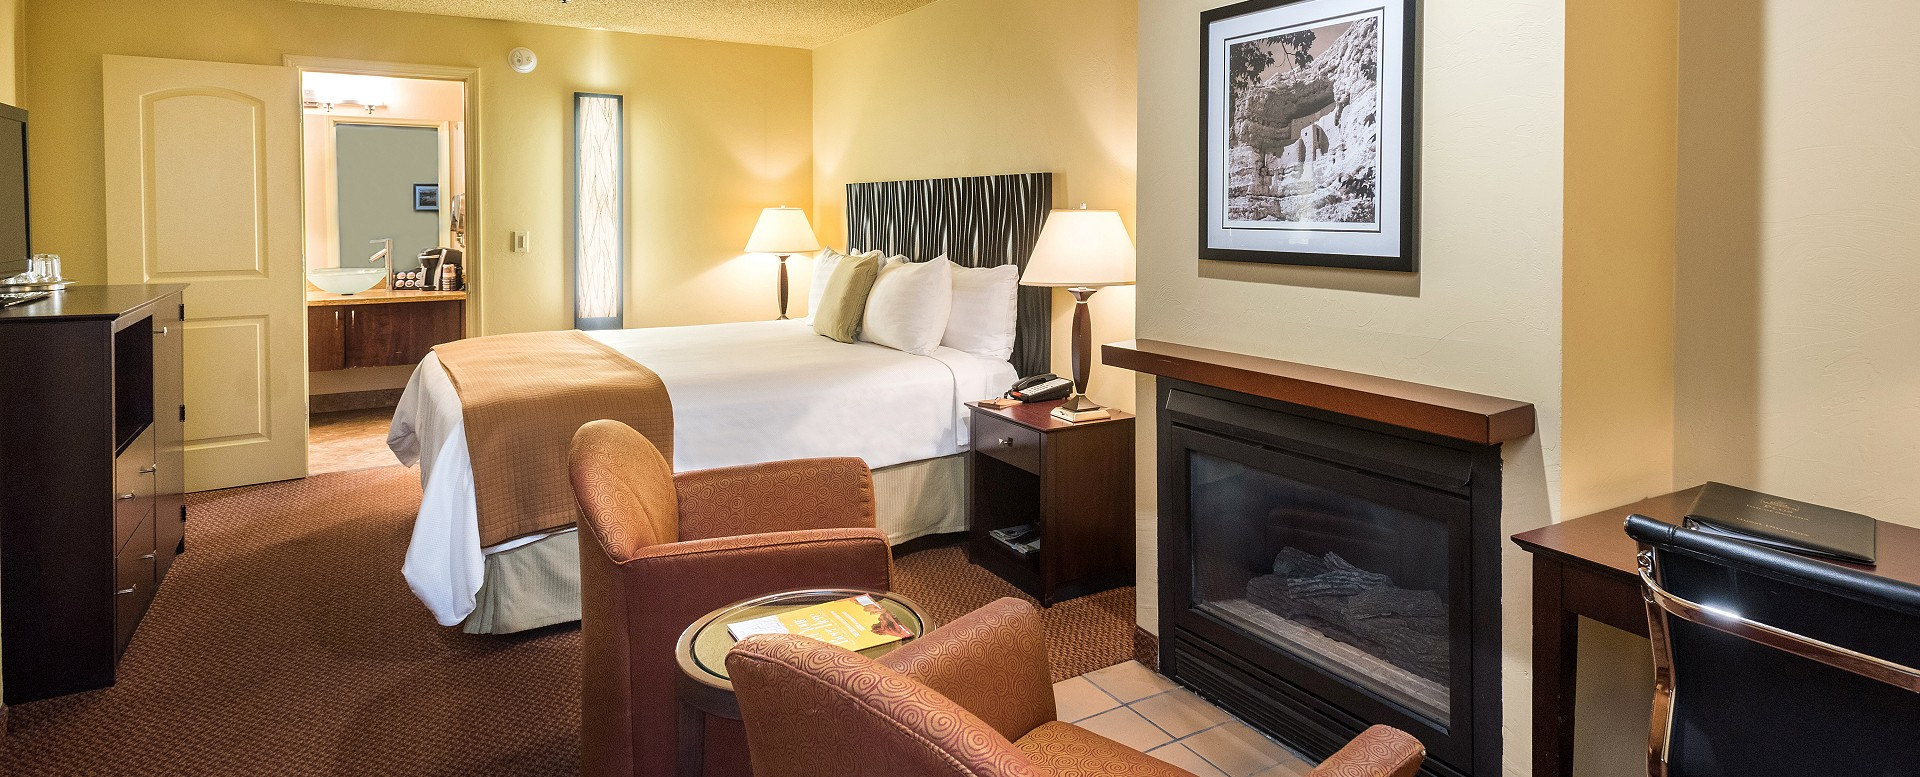 Best Western Plus Inn of Sedona-Guestroom with fireplace